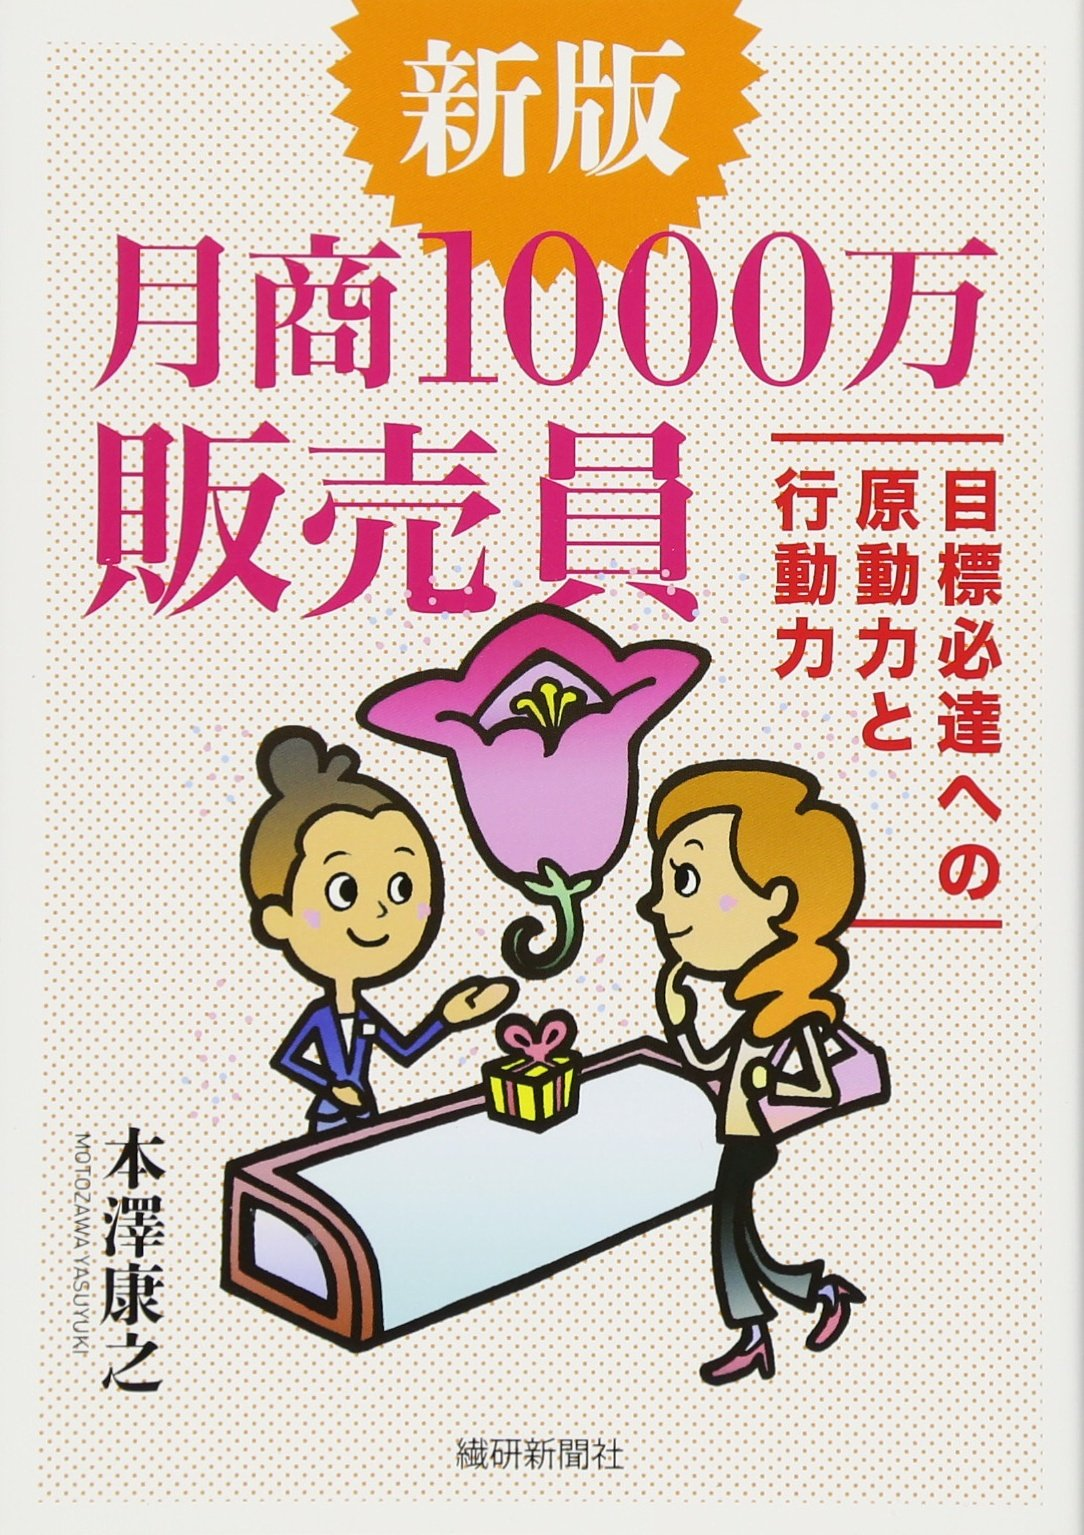 Download And action driving force to the target Achieve - 10 million salespeople monthly sales (2012) ISBN: 4881242725 [Japanese Import] pdf